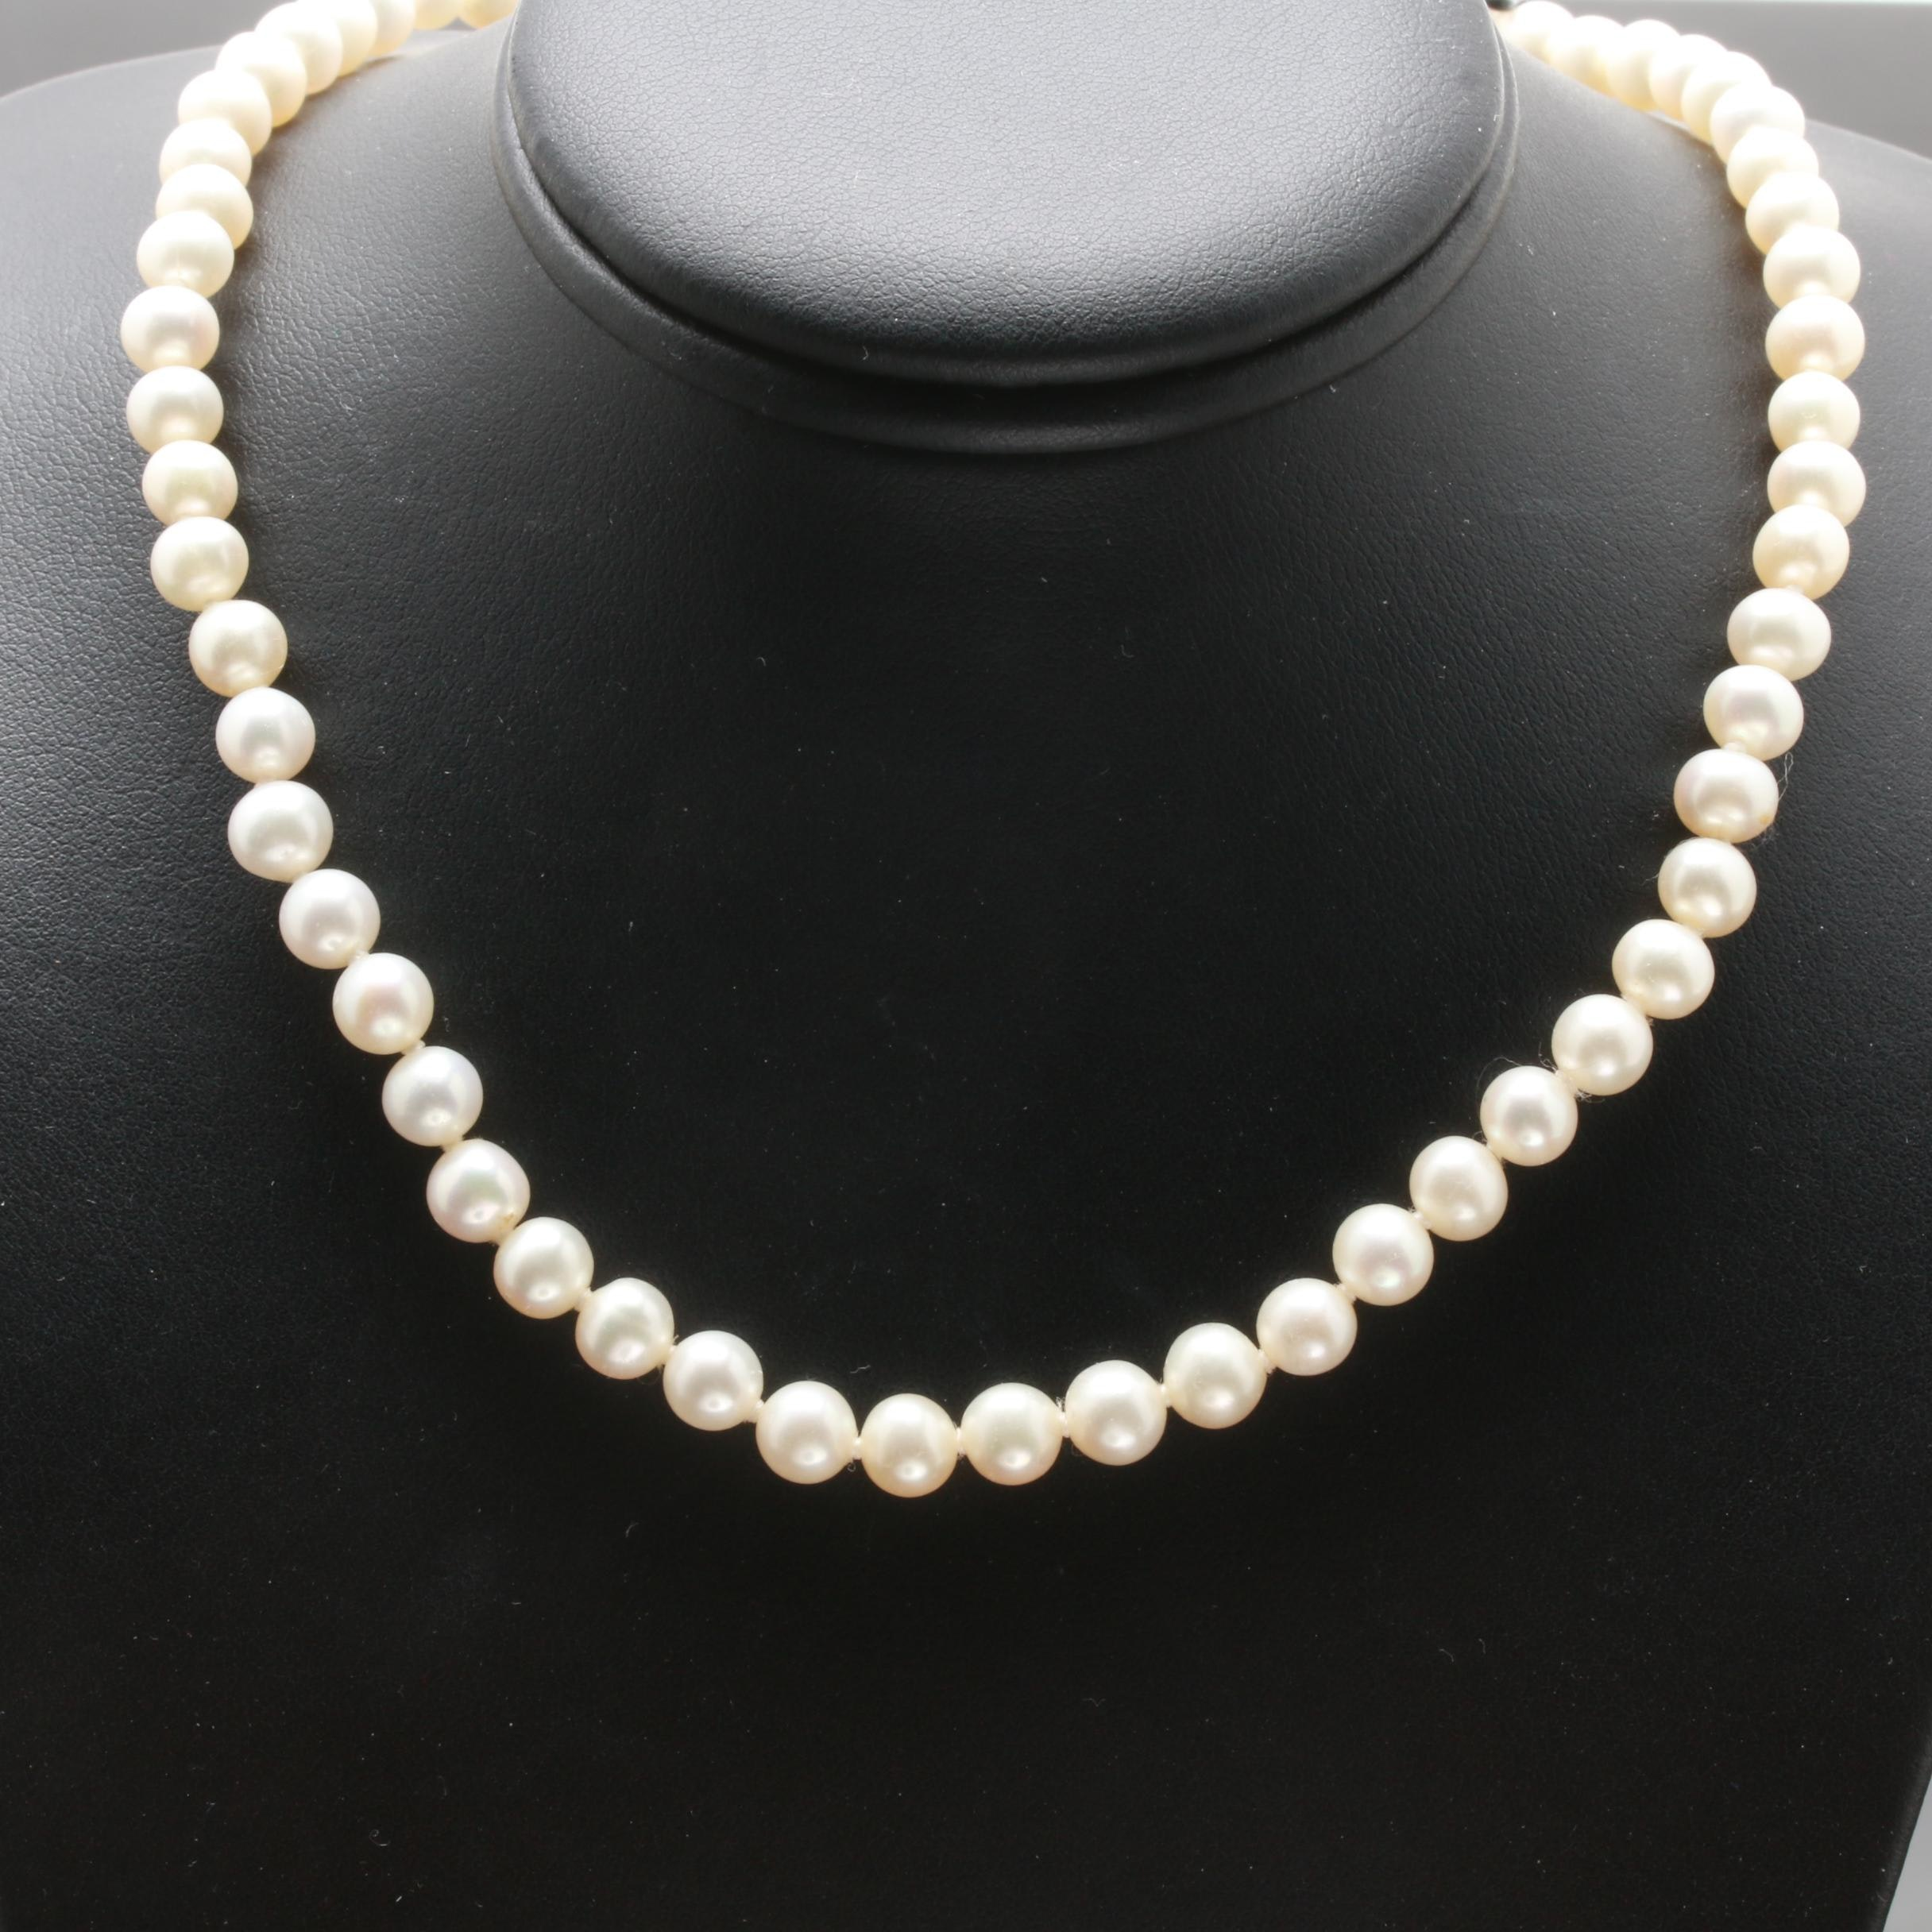 14K Yellow Gold Freshwater Cultured Pearl Single Strand Necklace